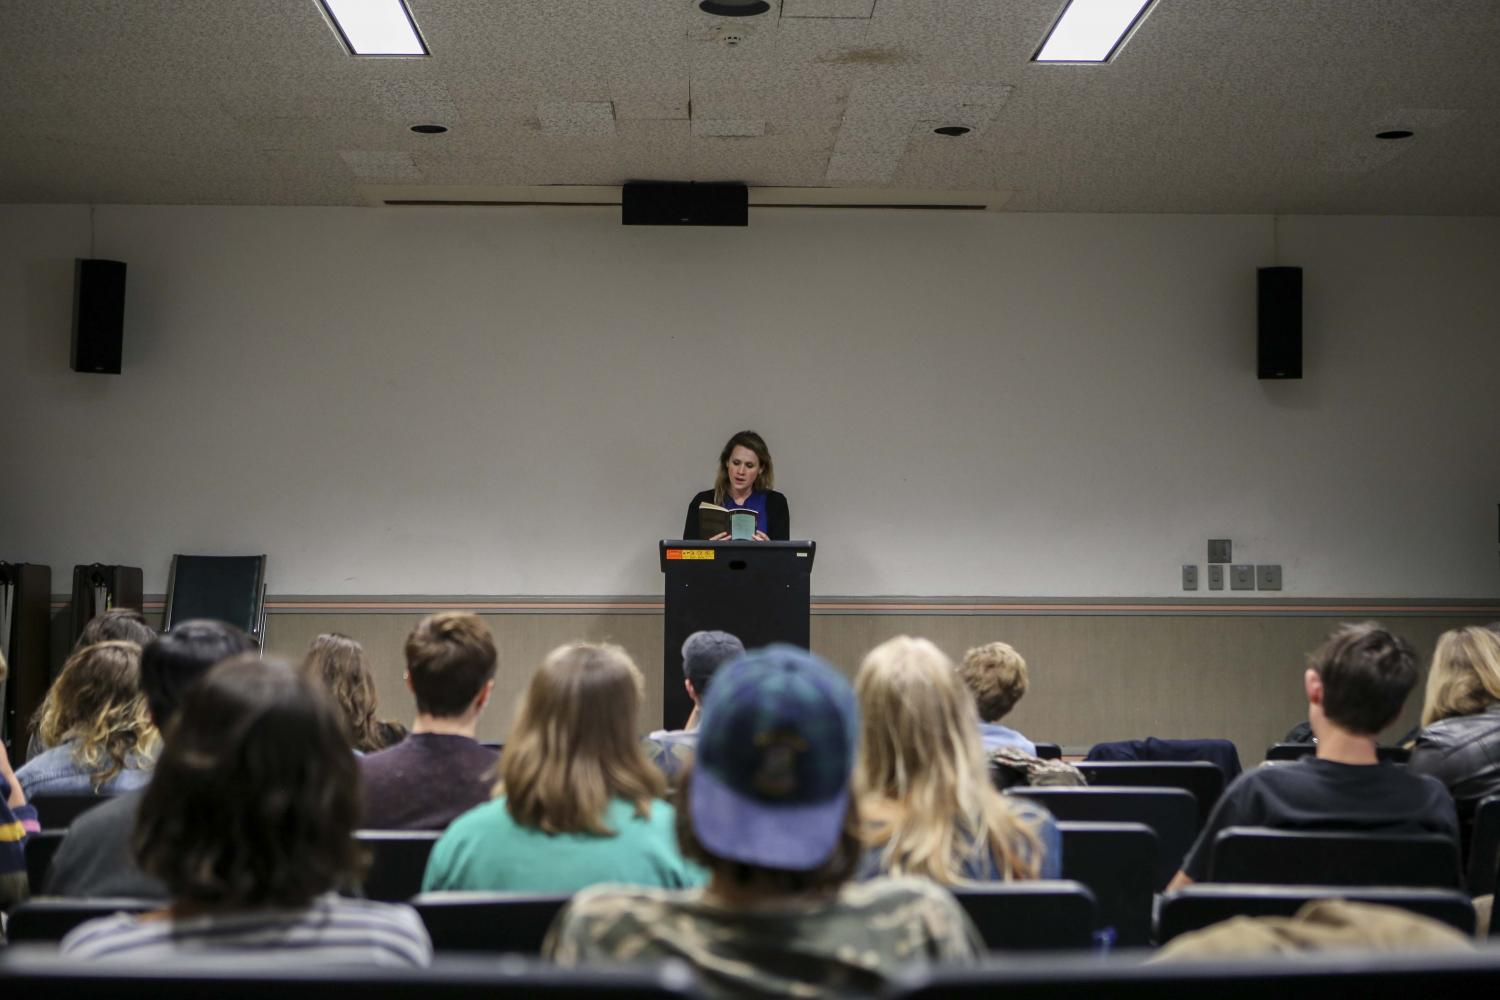 Poet, editor, and assistant professor of English at Cleveland State University Caryl Pagel reads to an audience in Wilder Hall. Pagel came to Oberlin Wednesday to give a poetry reading in which she debuted several new works.